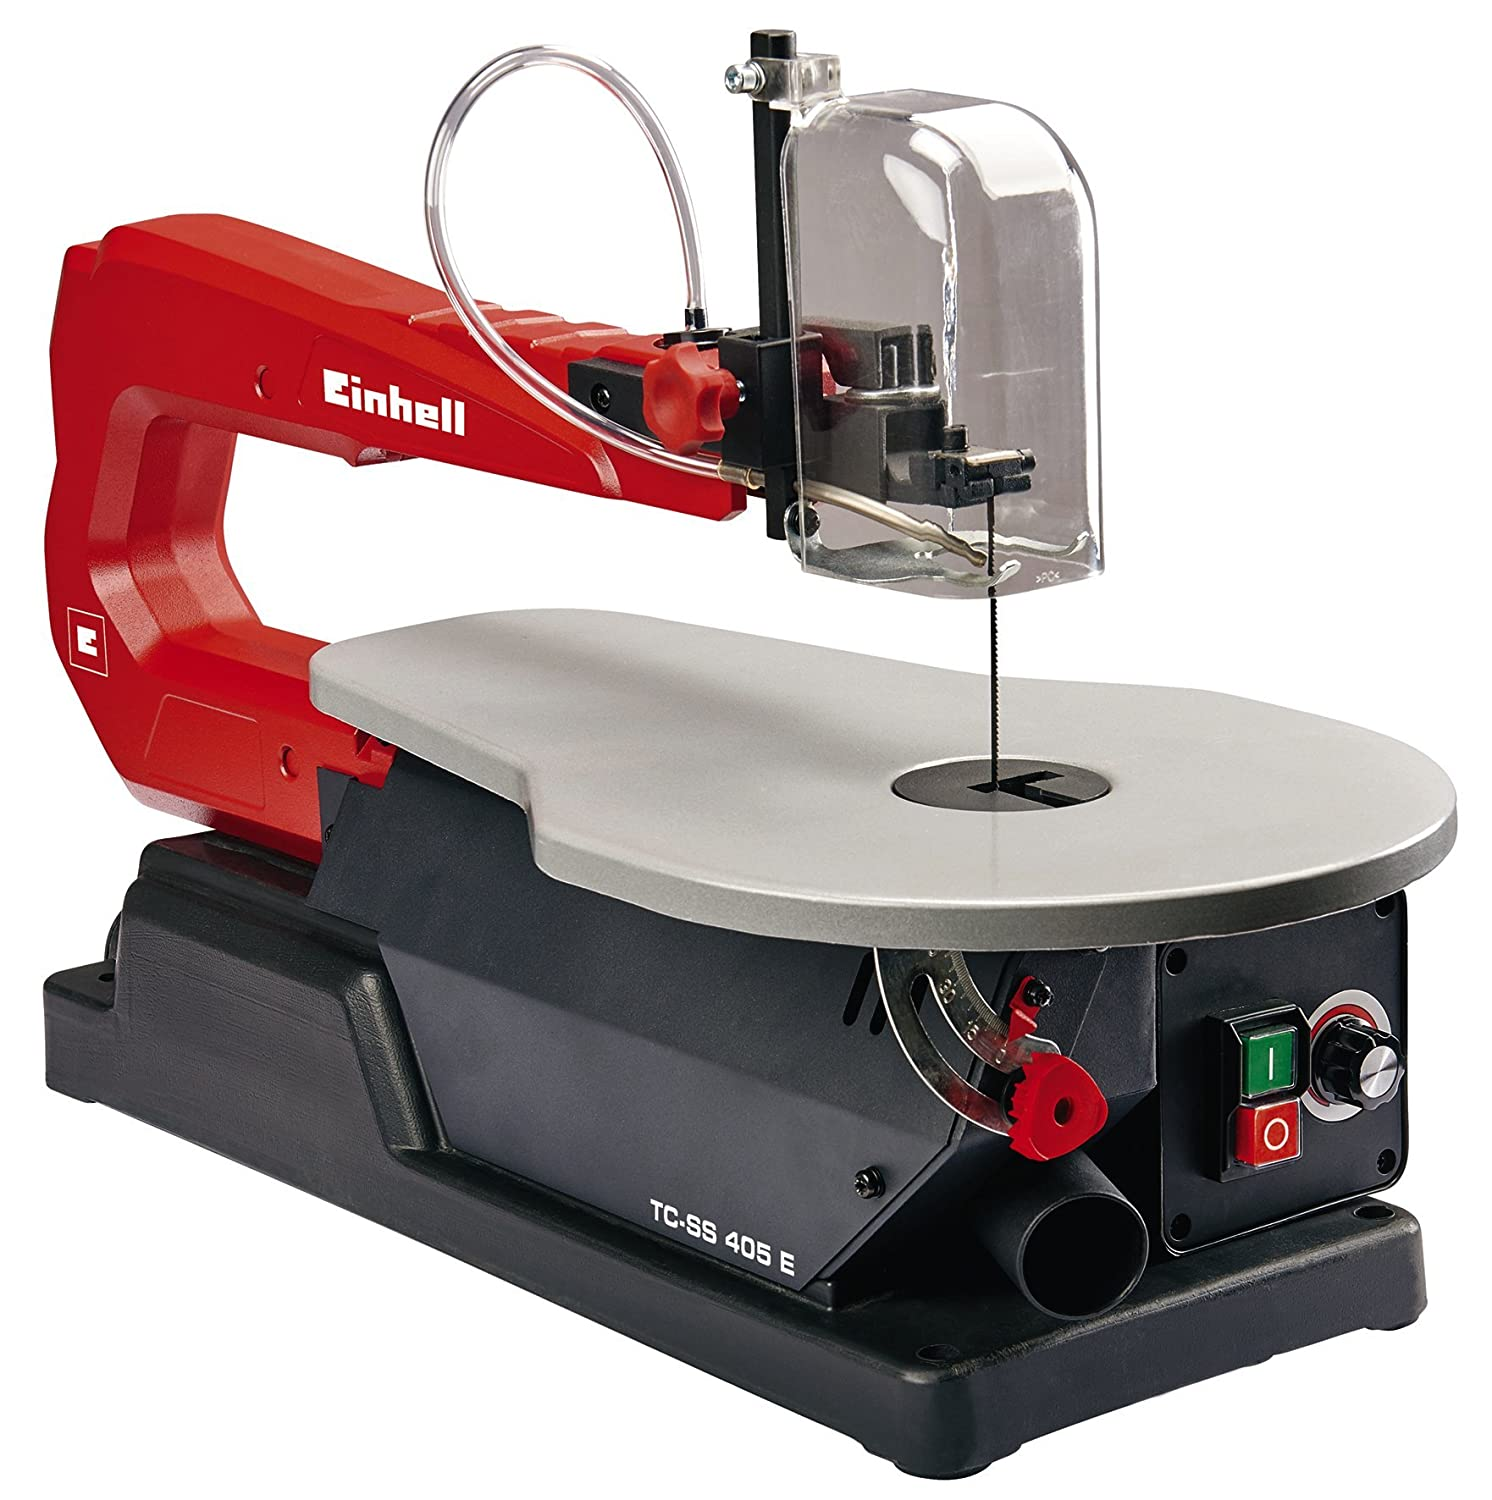 scroll saw labeled. einhell tc-ss 405 e 120 w scroll saw - red labeled